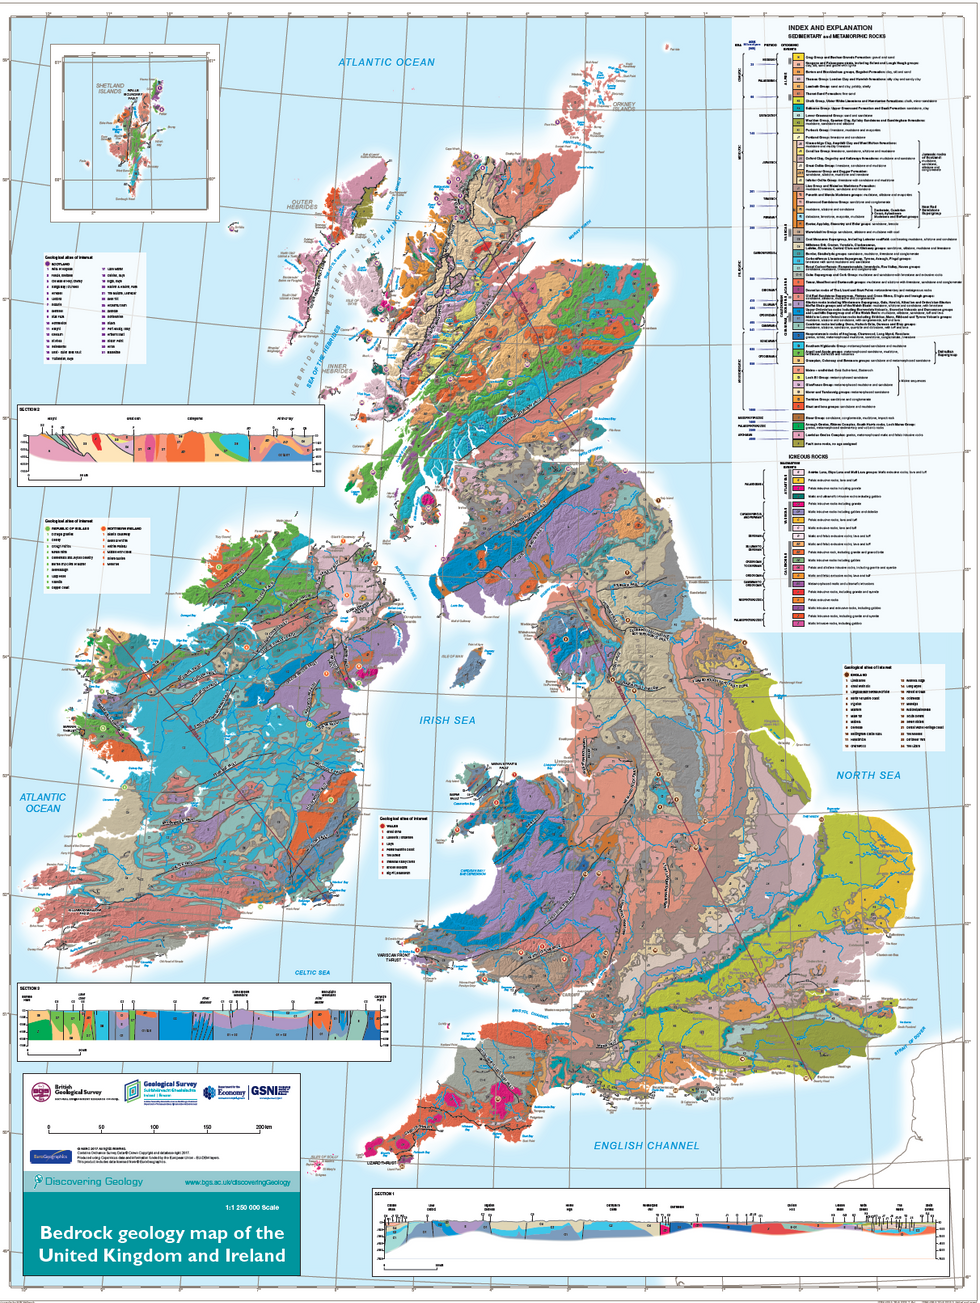 u200bBedrock Geology of the UK and Ireland